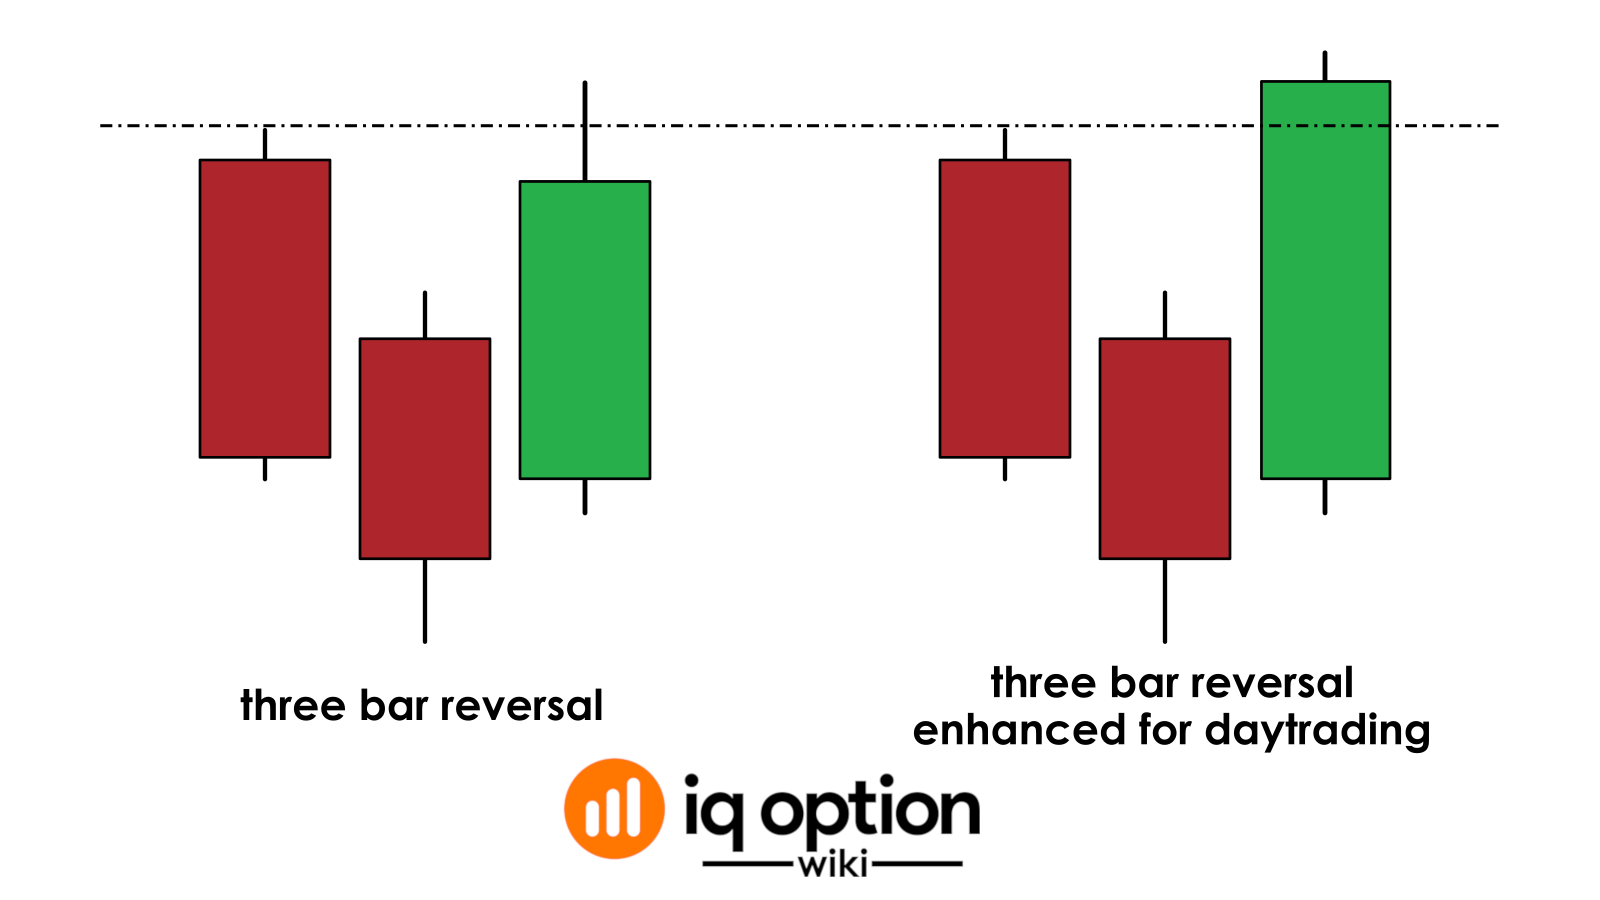 three bar reversal